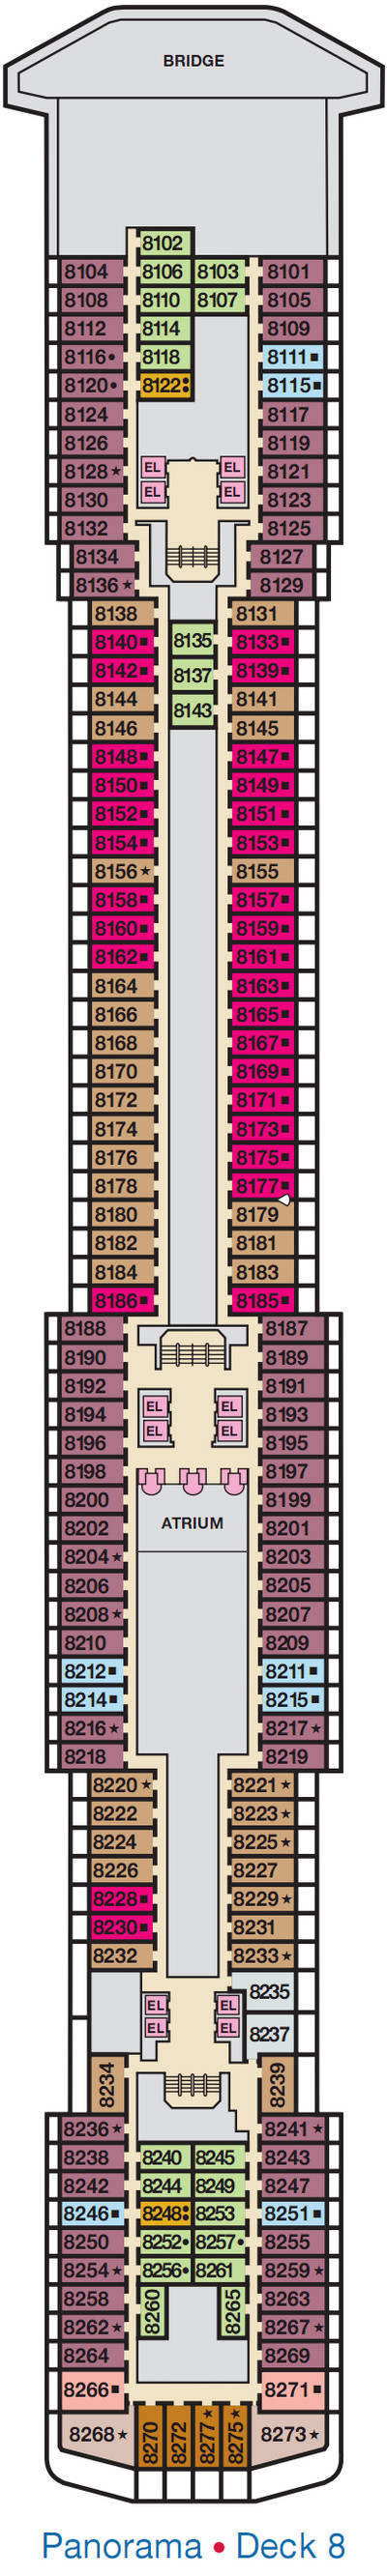 Carnival Spirit Panorama Deck 8 layout